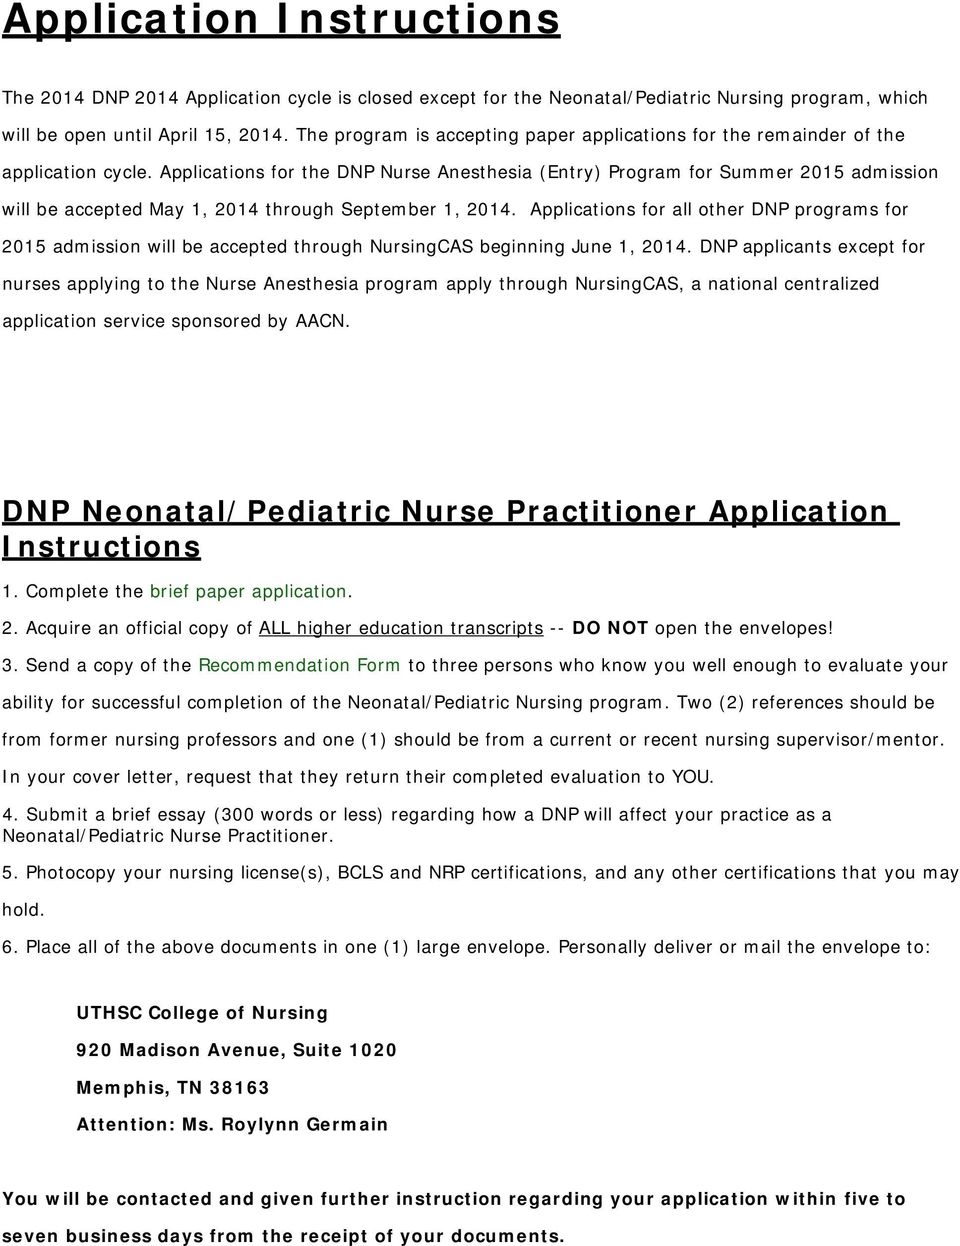 Applications for the DNP Nurse Anesthesia (Entry) Program for Summer 2015 admission will be accepted May 1, 2014 through September 1, 2014.